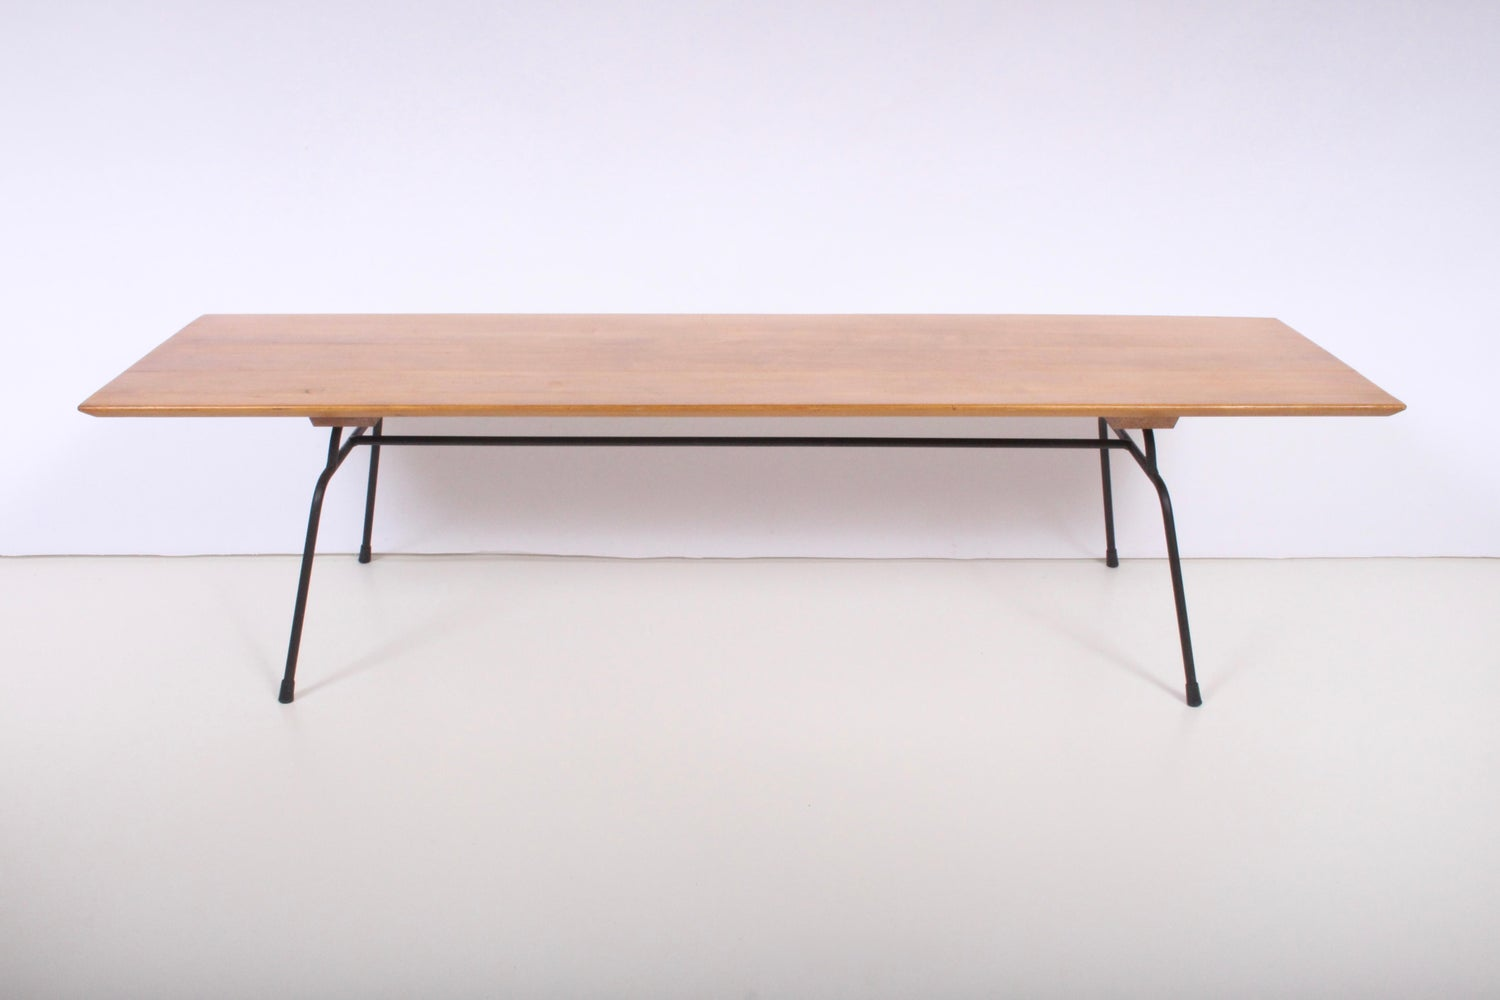 Paul mccobb planner group birch and wrought iron coffee table circa 1950 for sale at 1stdibs